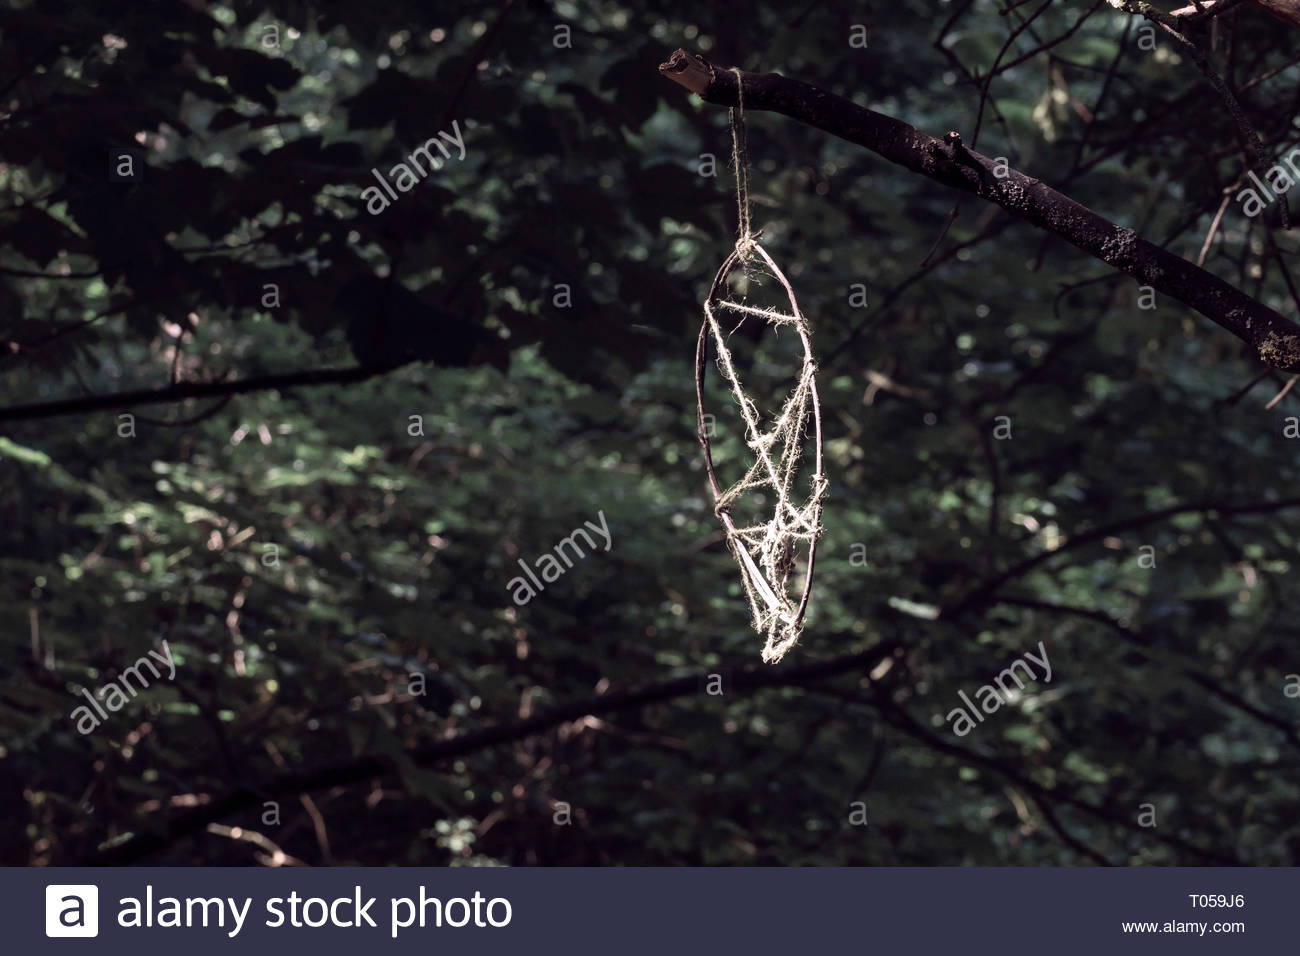 ecfbe907ee6 A curious object left hanging from a tree in a forest. - Stock Image